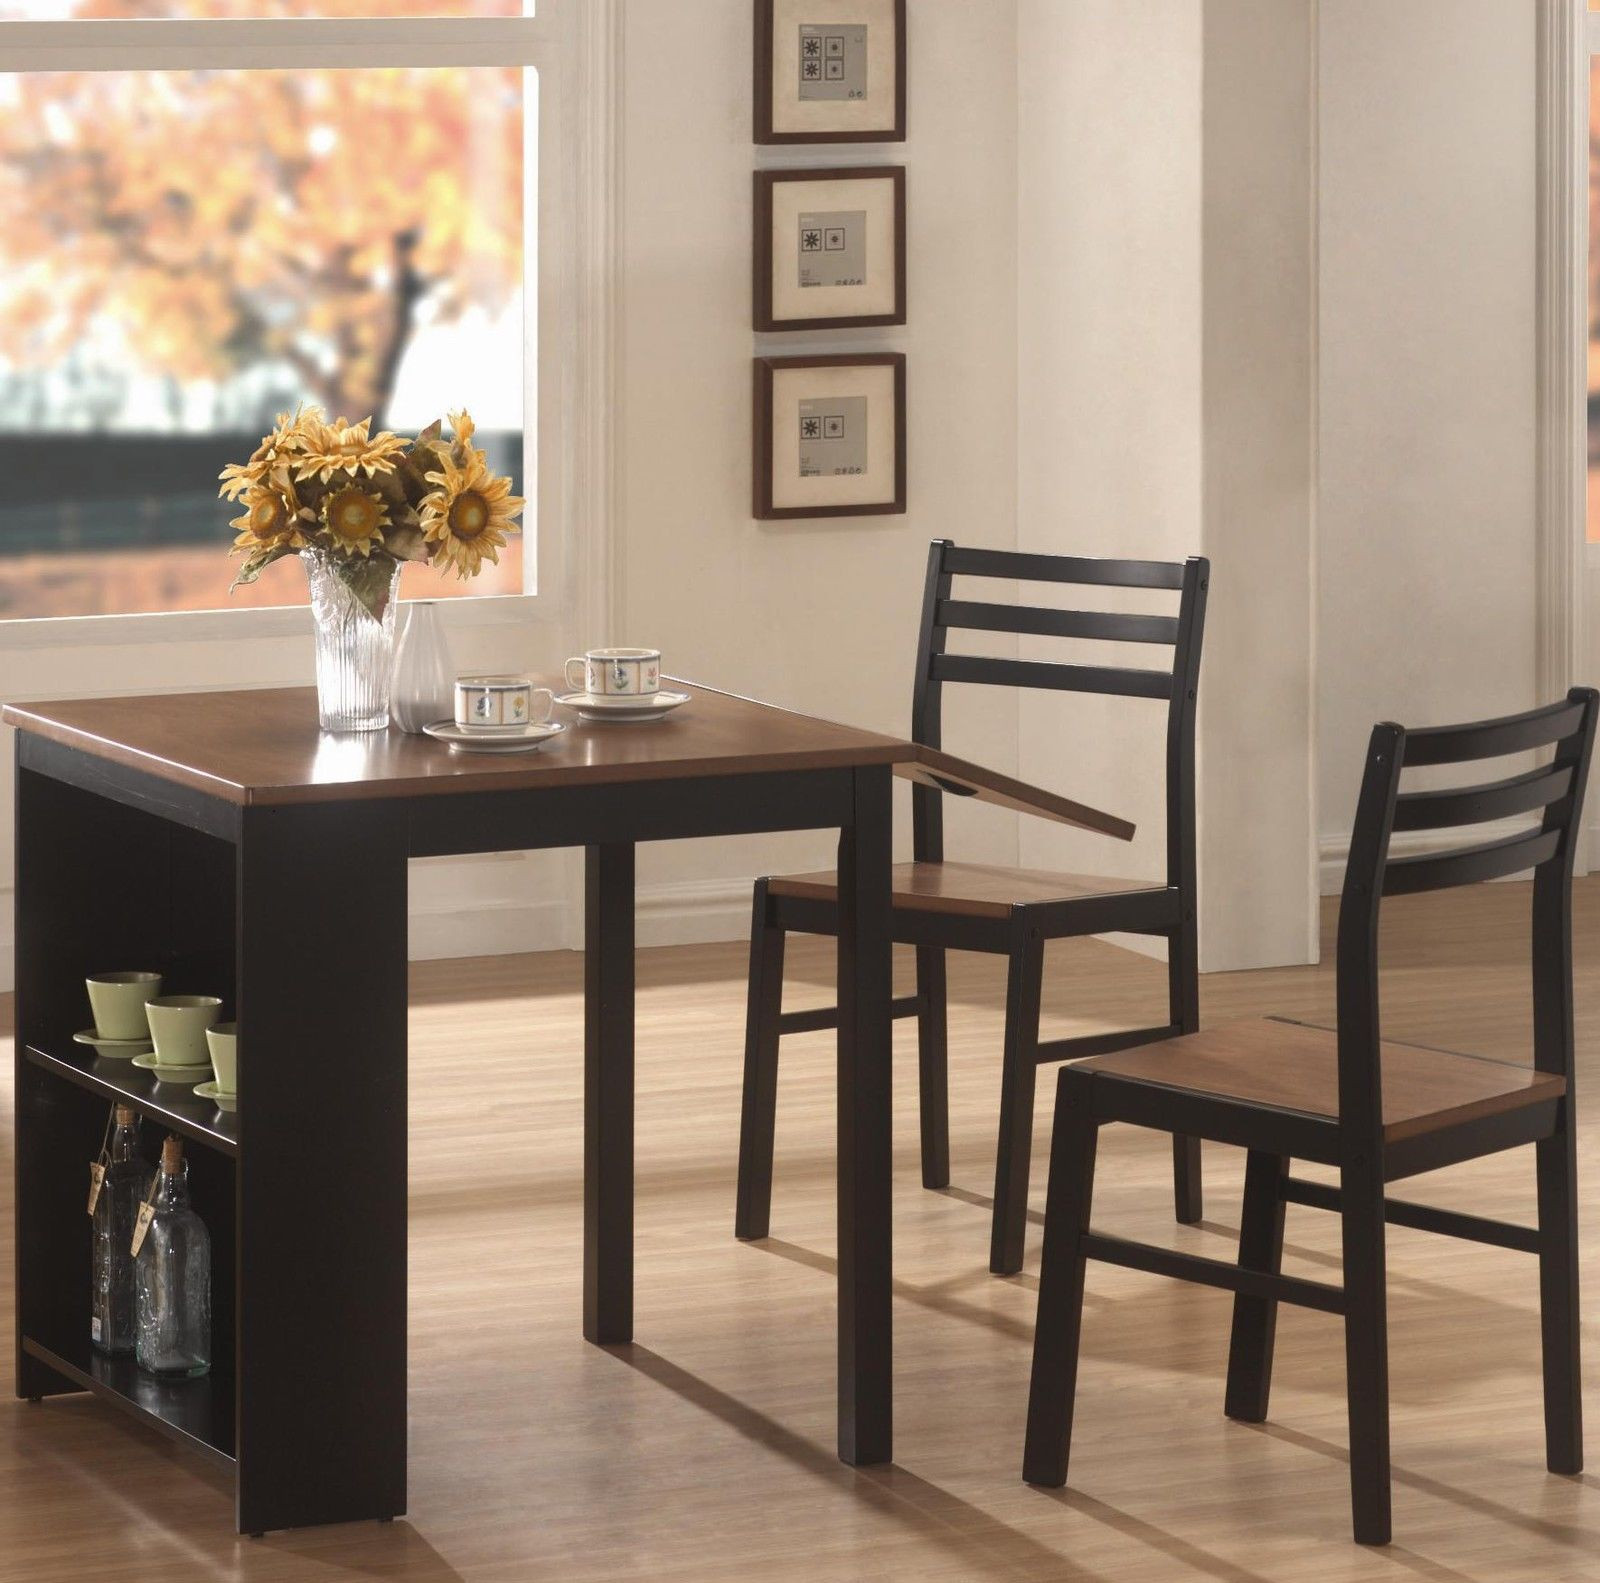 Best ideas about Dining Table For Small Space . Save or Pin Unique dining tables for small spaces large and Now.